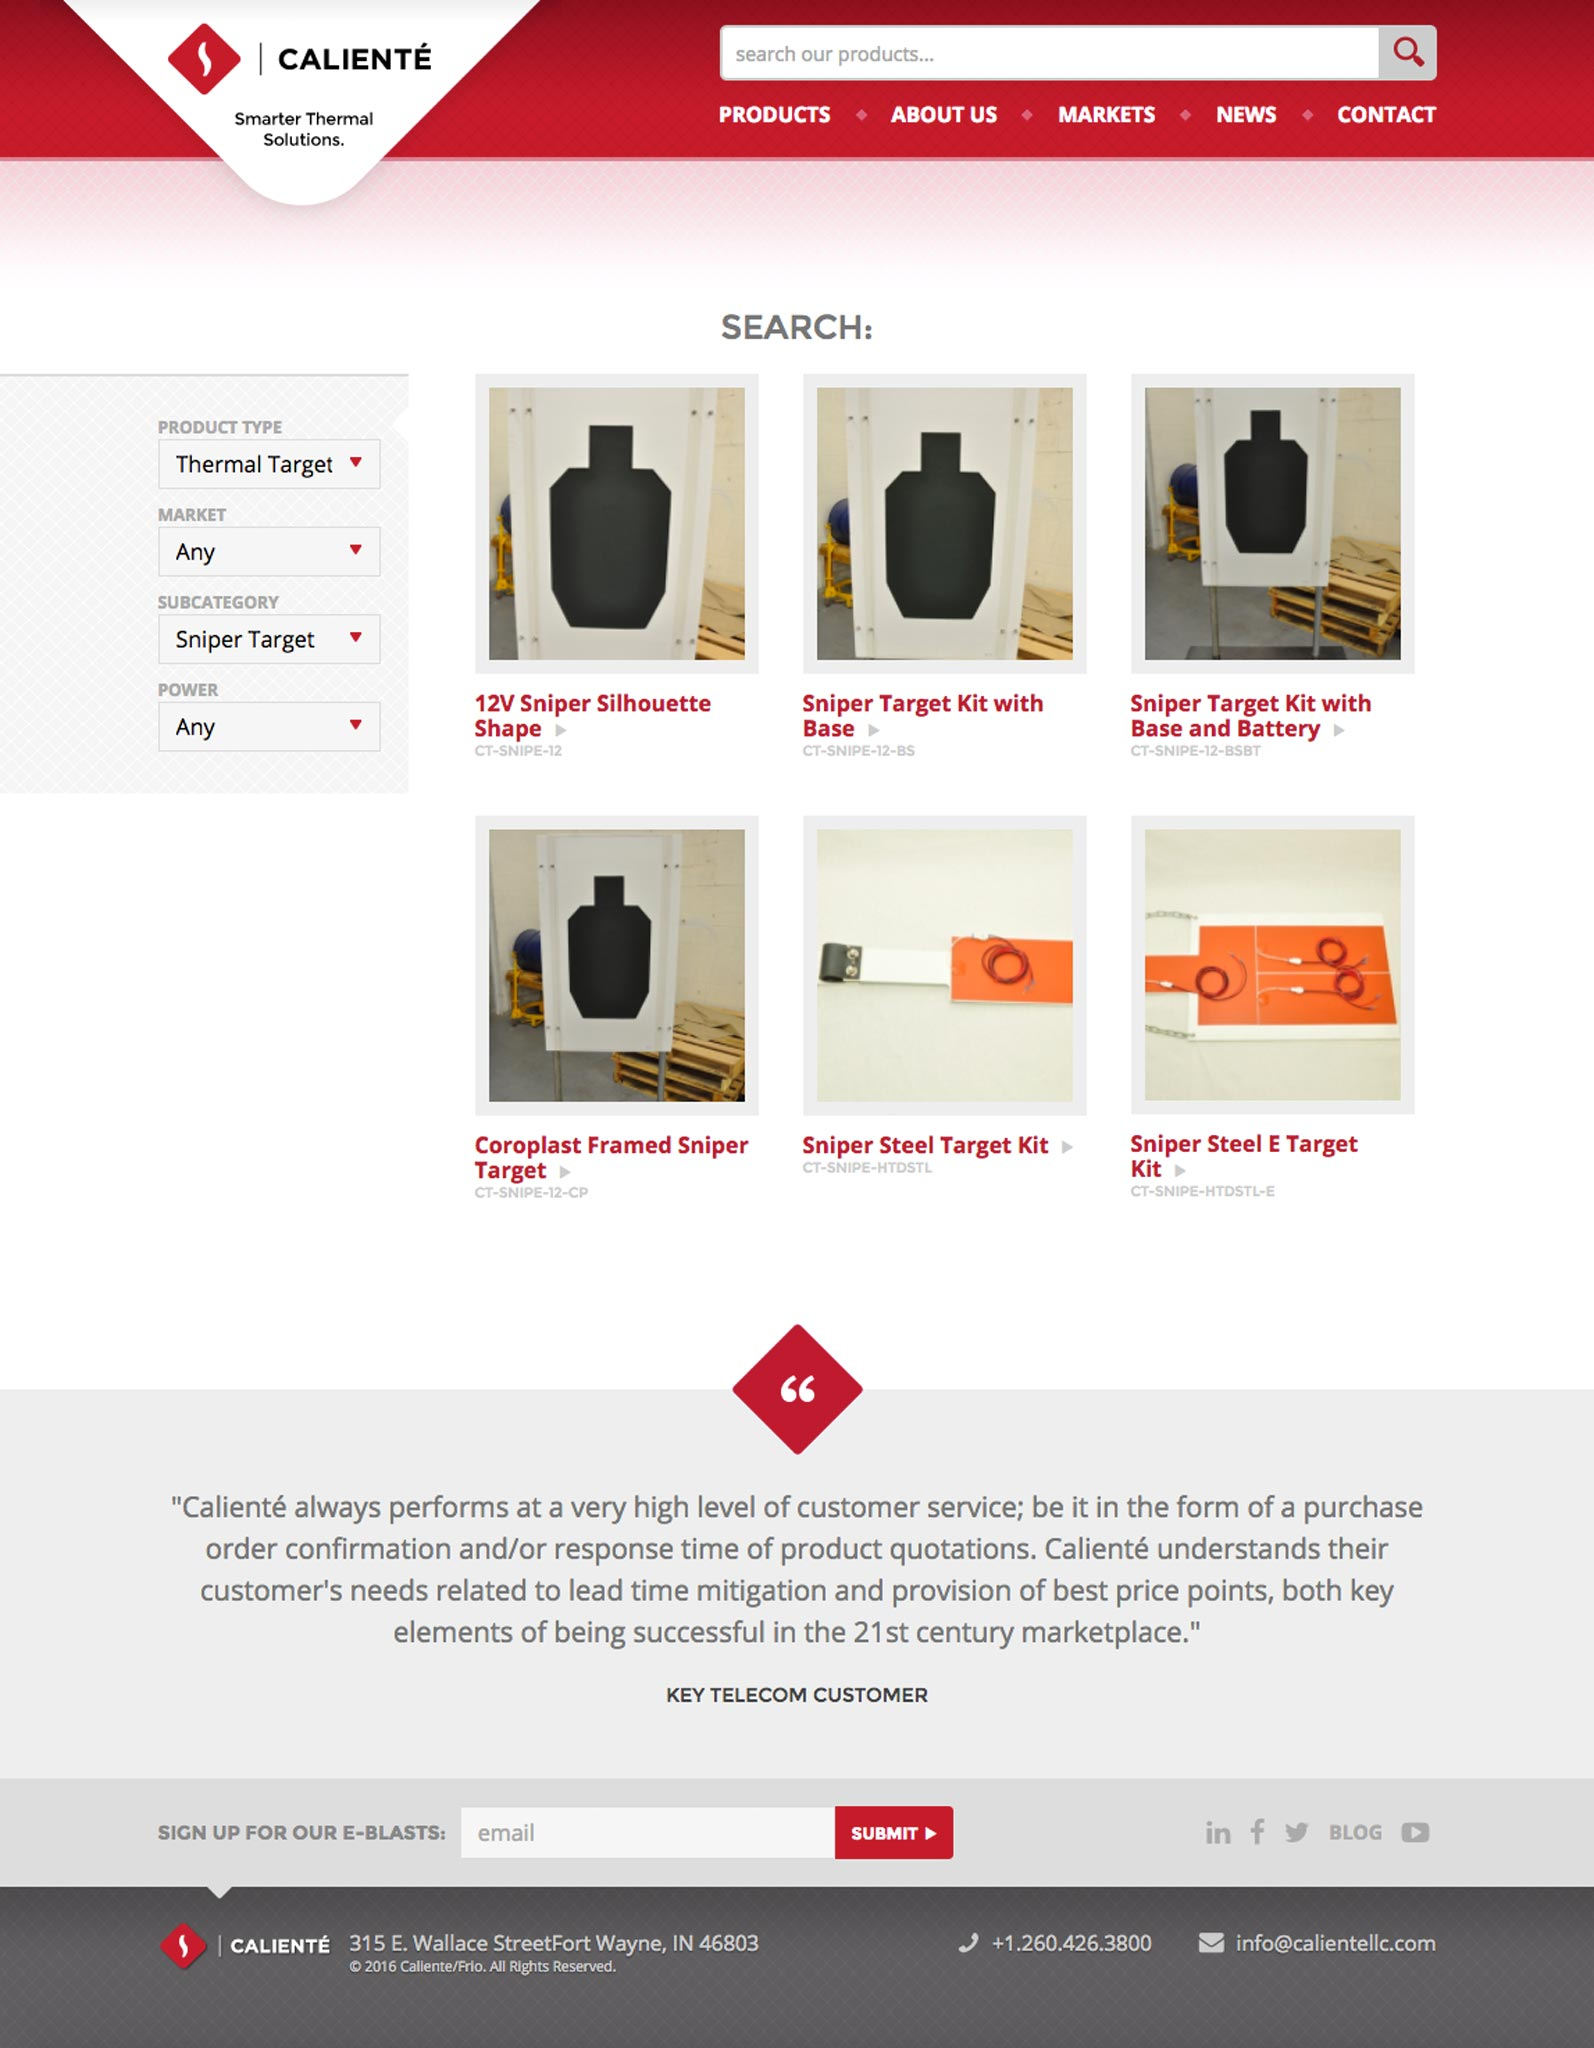 Caliente: Website Product Catalog